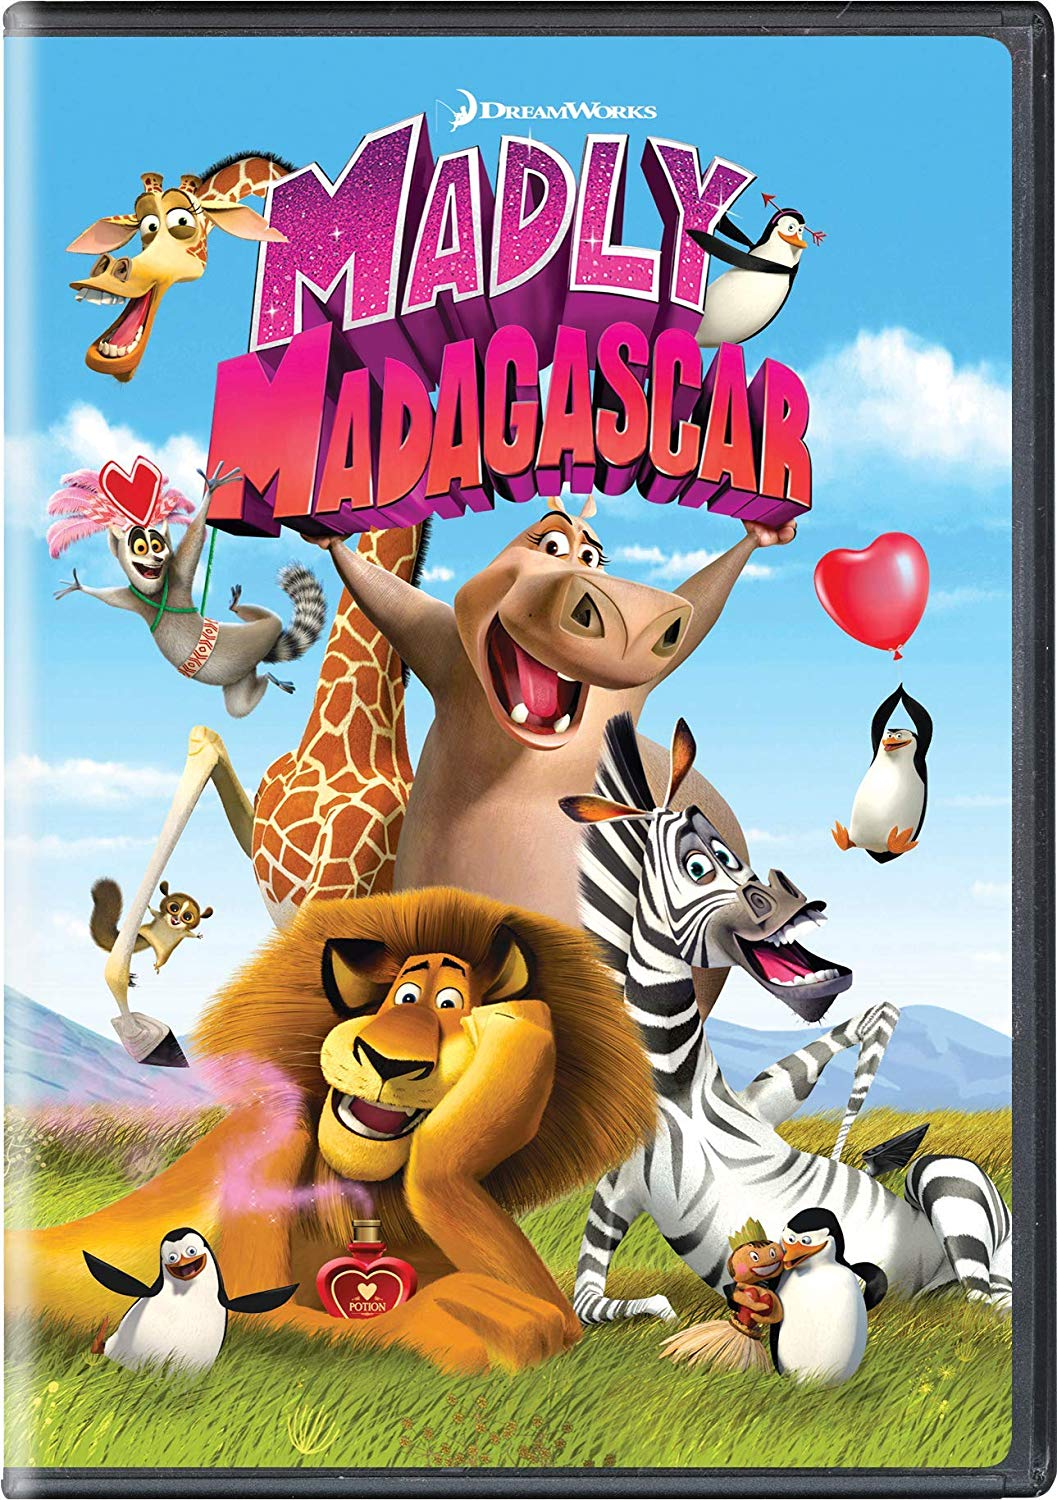 All your favorites from the Madagascar movies get together when love potion falls from the sky and high-octane adventures follow.